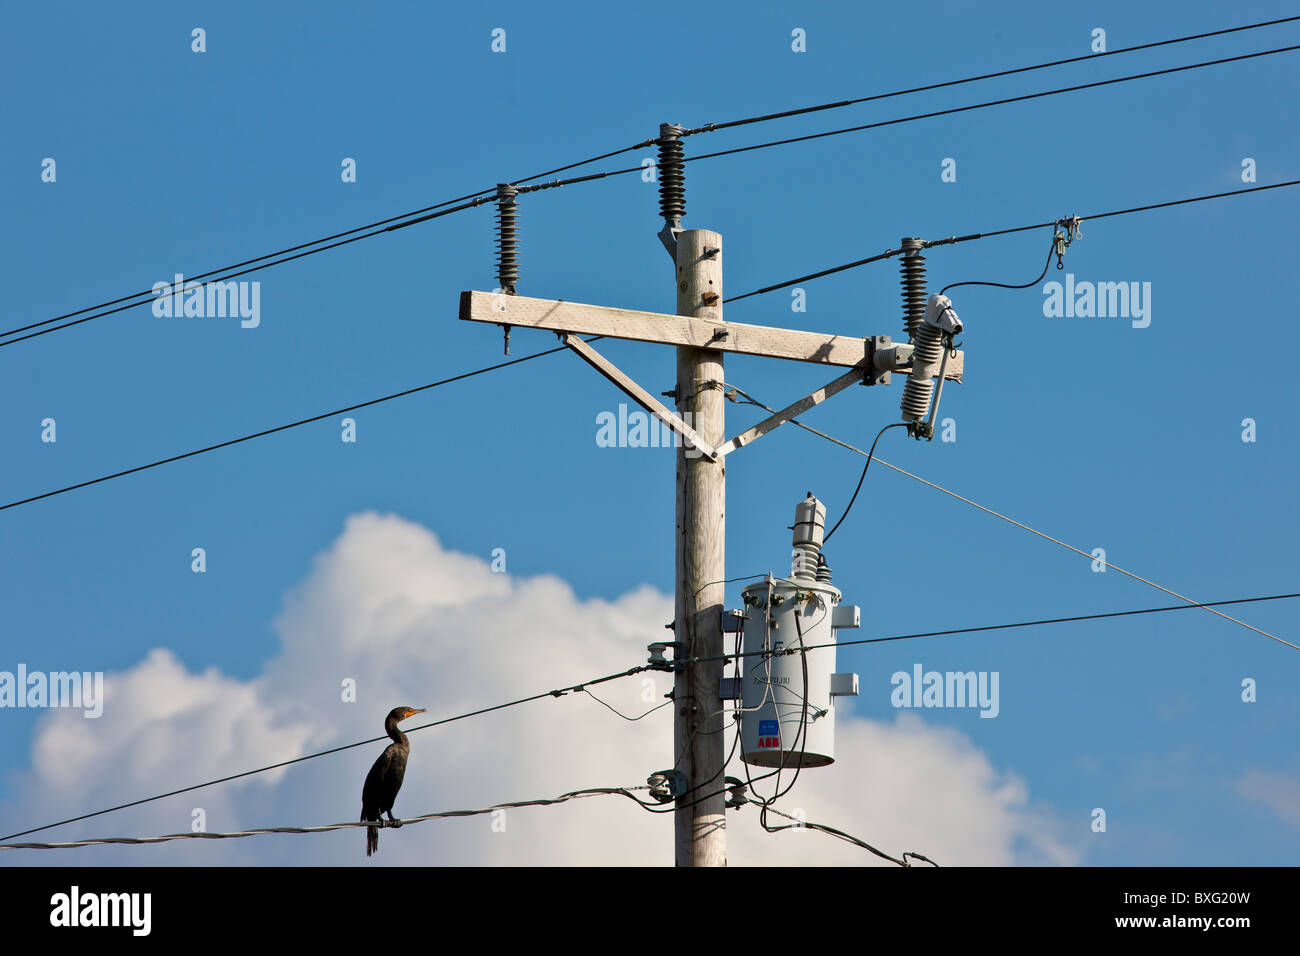 Wire Conduit Stock Photos Images Alamy Wiring Cable Bird On The Cormorant Power And Telephone Cables Telegraph Pole Everglades